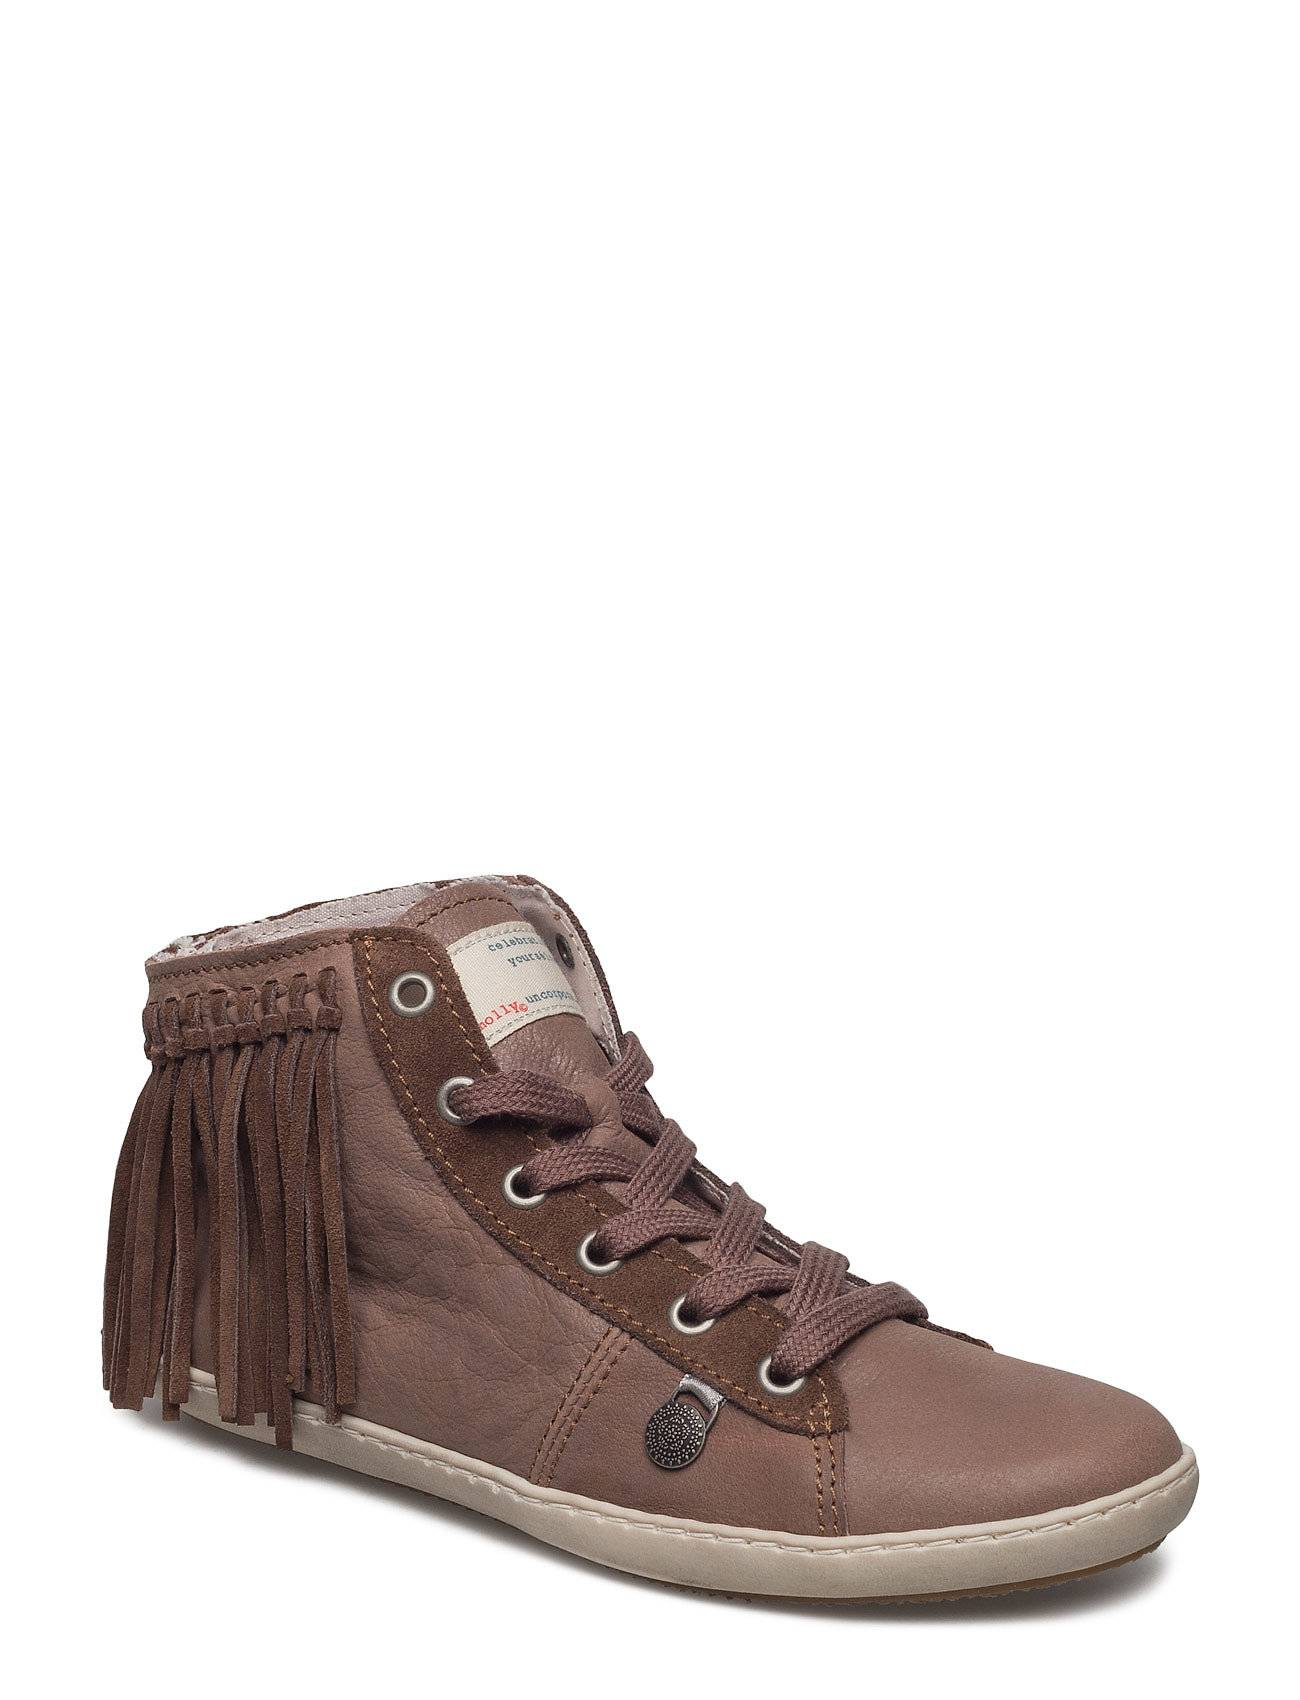 ODD MOLLY Jump High Sneakers